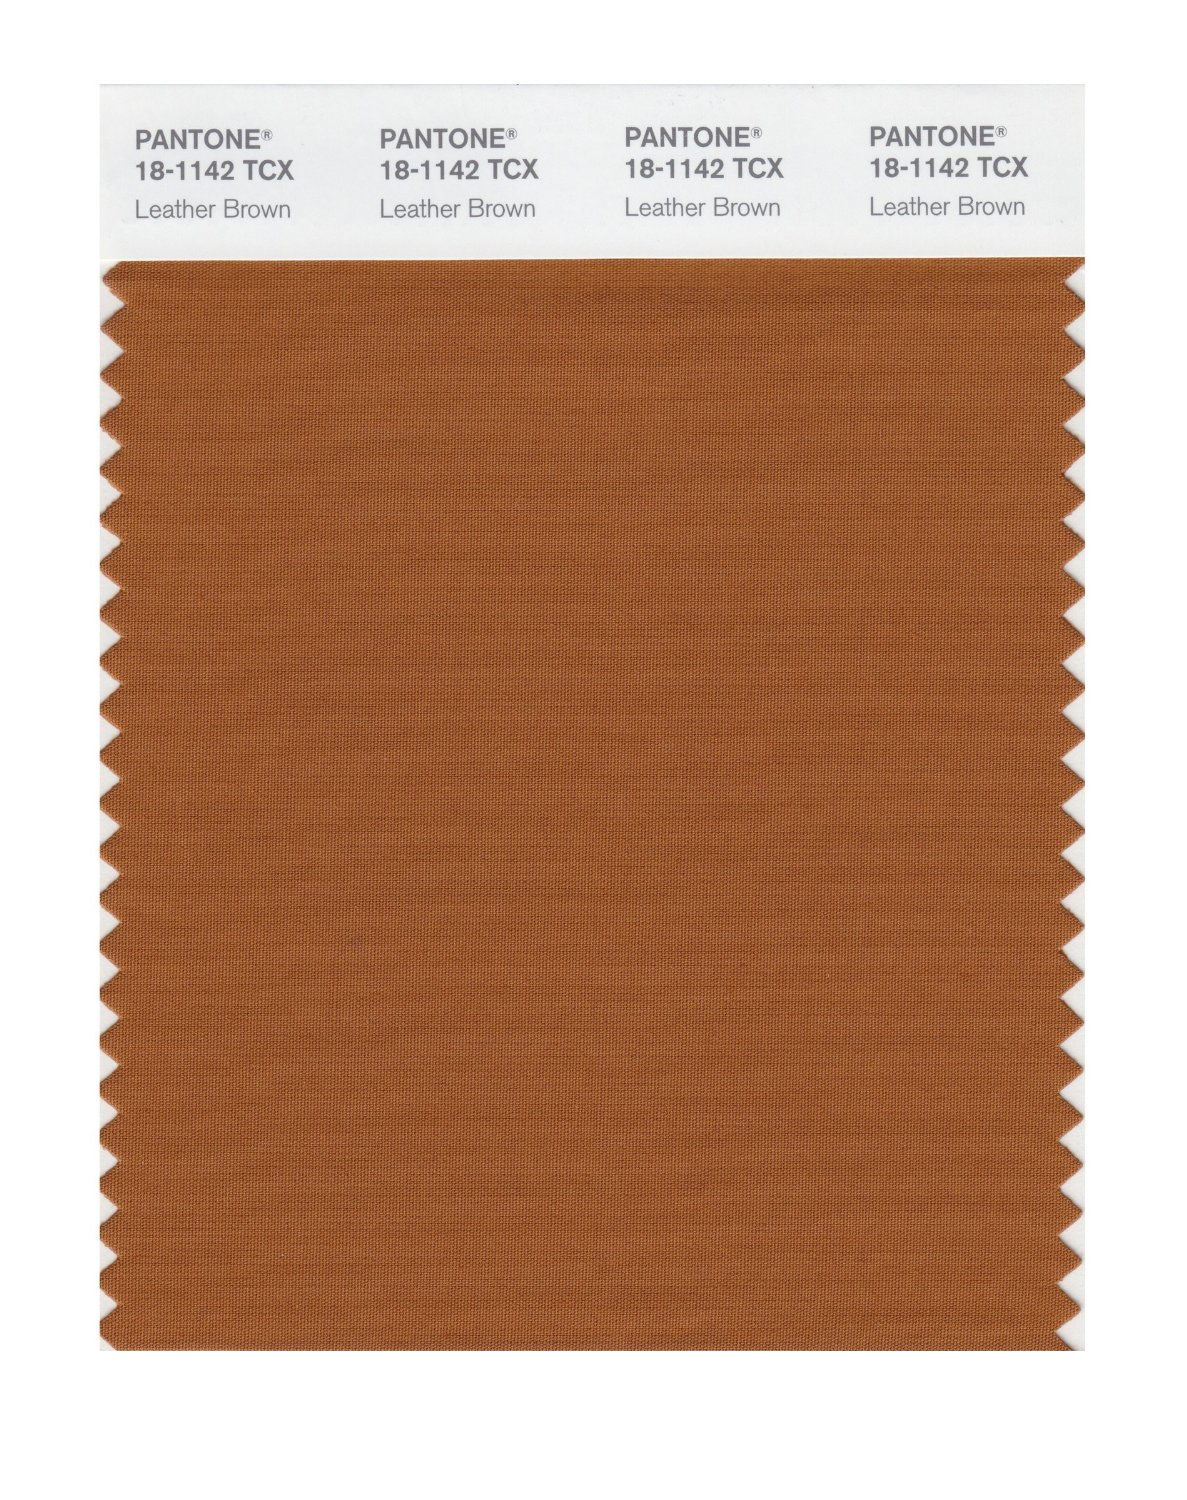 Pantone Smart Swatch 18-1142 Leather Brown